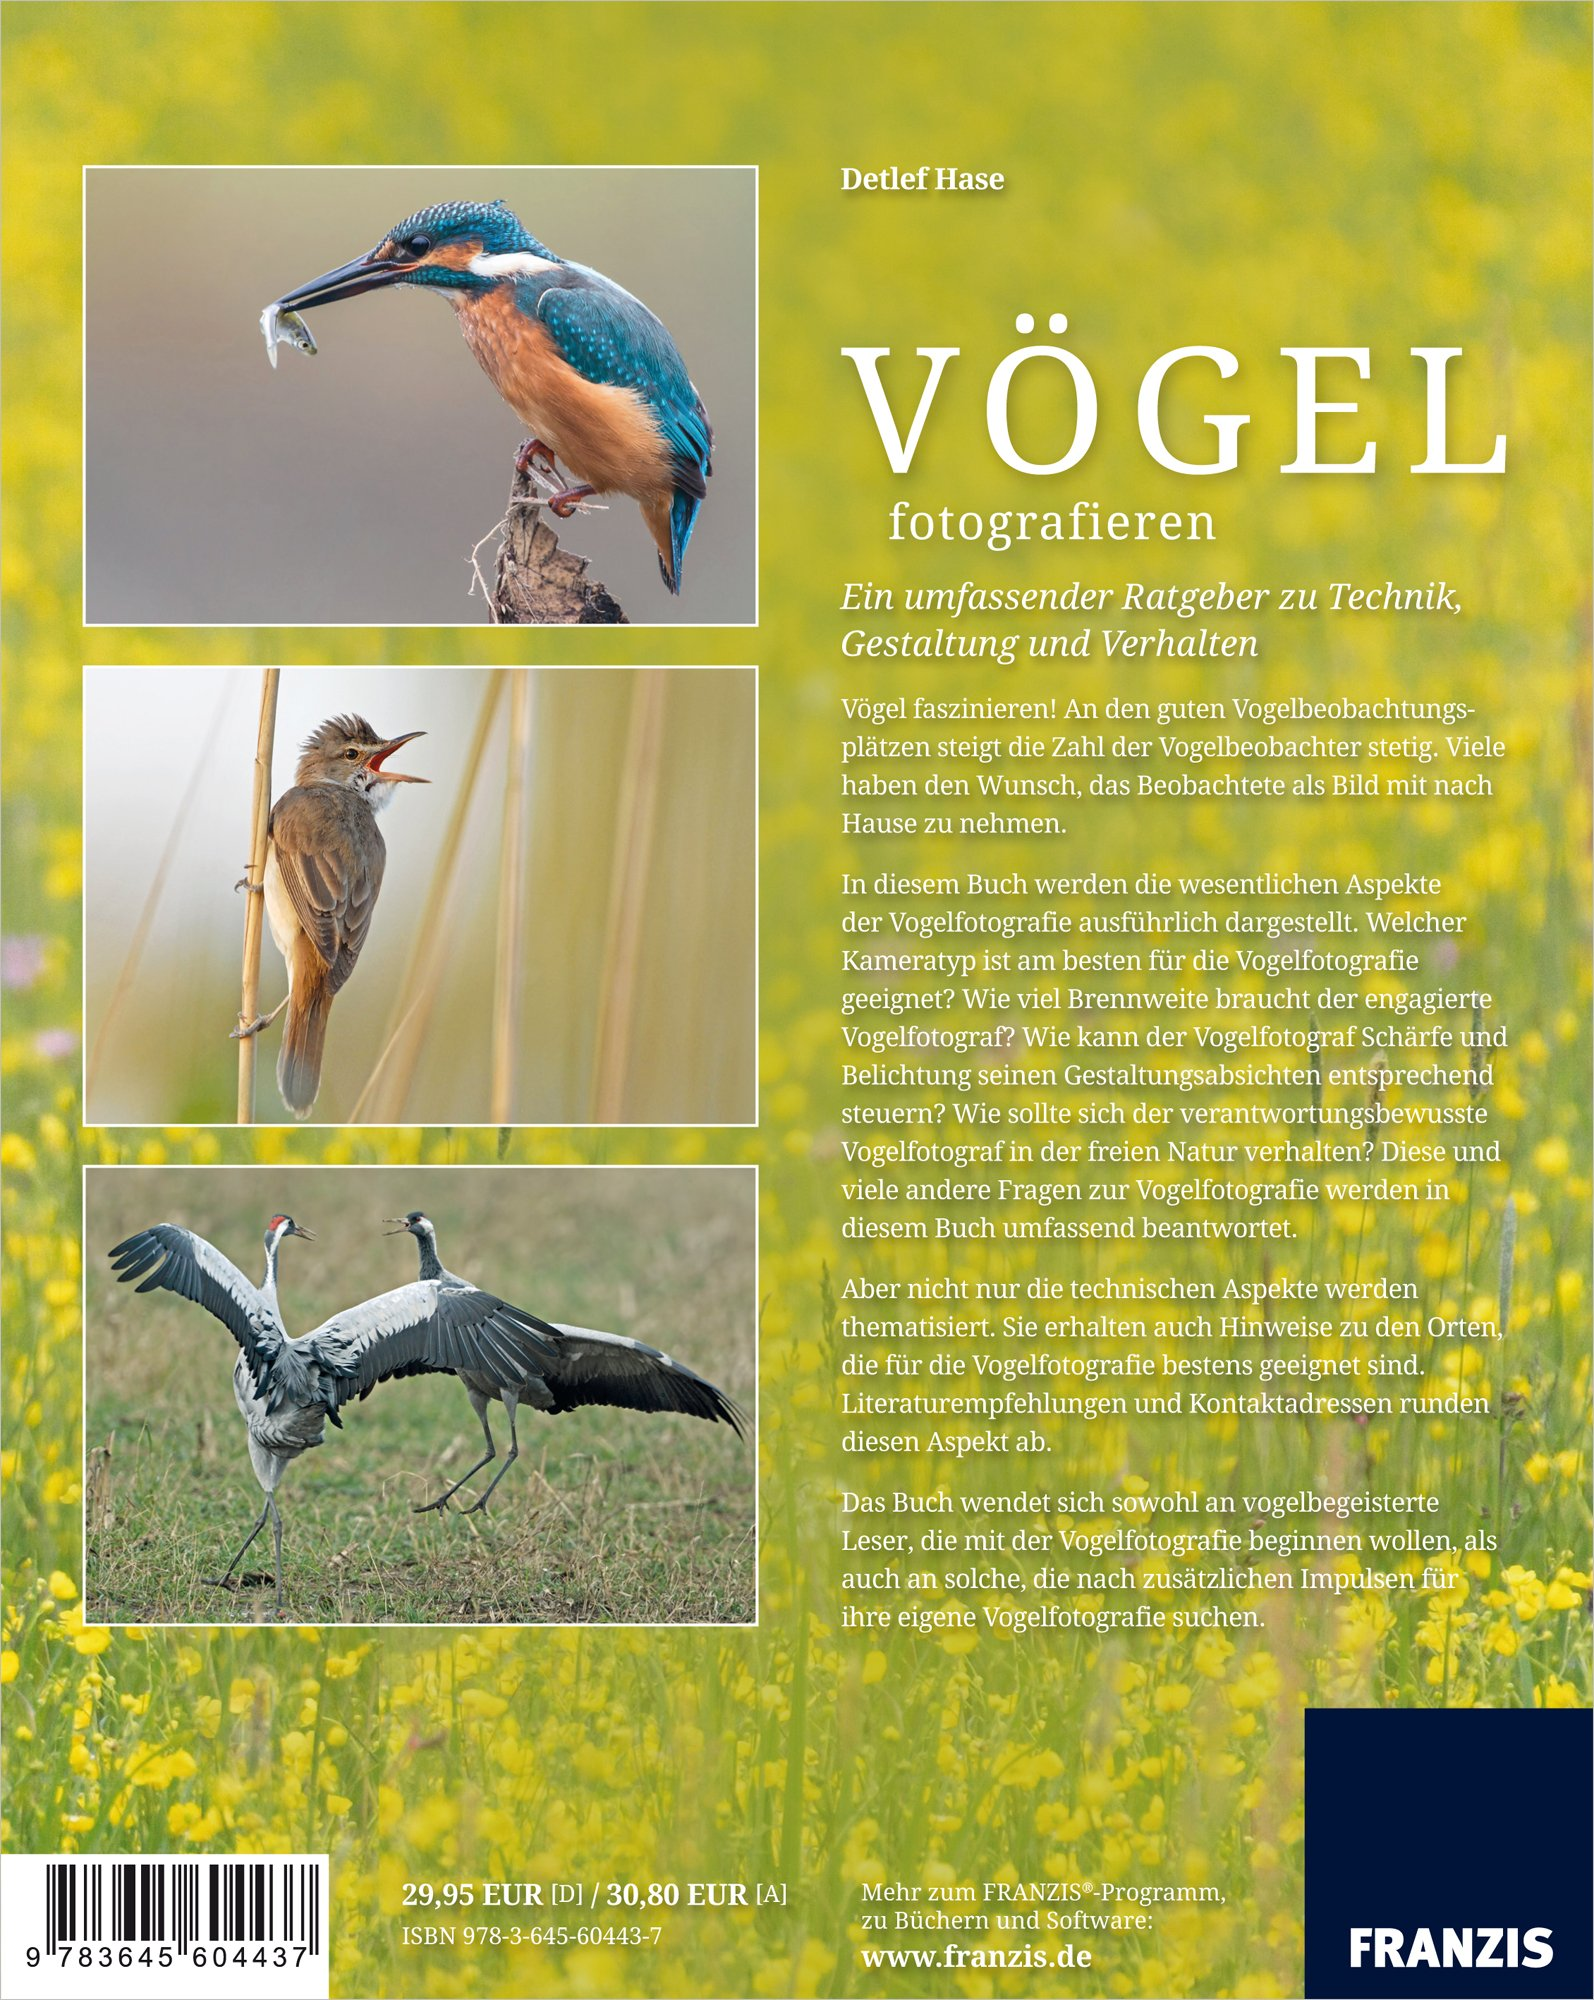 Vögel fotografieren: 9783645604437: Amazon.com: Books